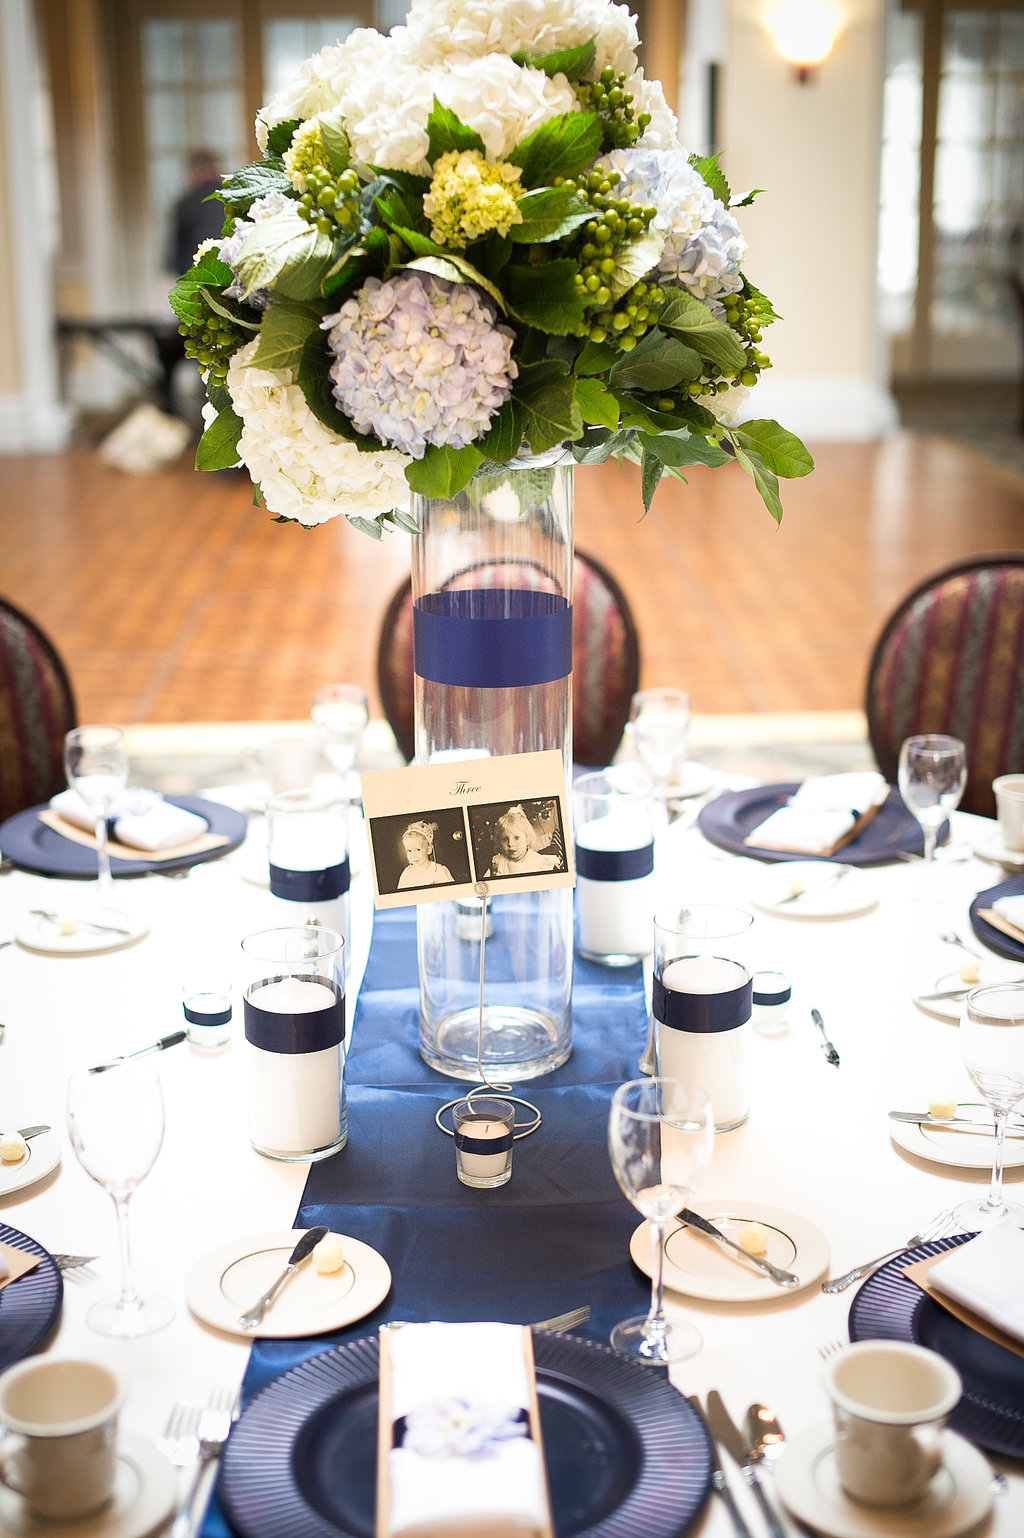 For the centerpieces we did a mix of white, blue and green hydrangeas with hypericum berries in a lush bouquet atop a cylinder vase with navy satin stripe overa mix of pillar and votive candles with matching navy satin stripe.